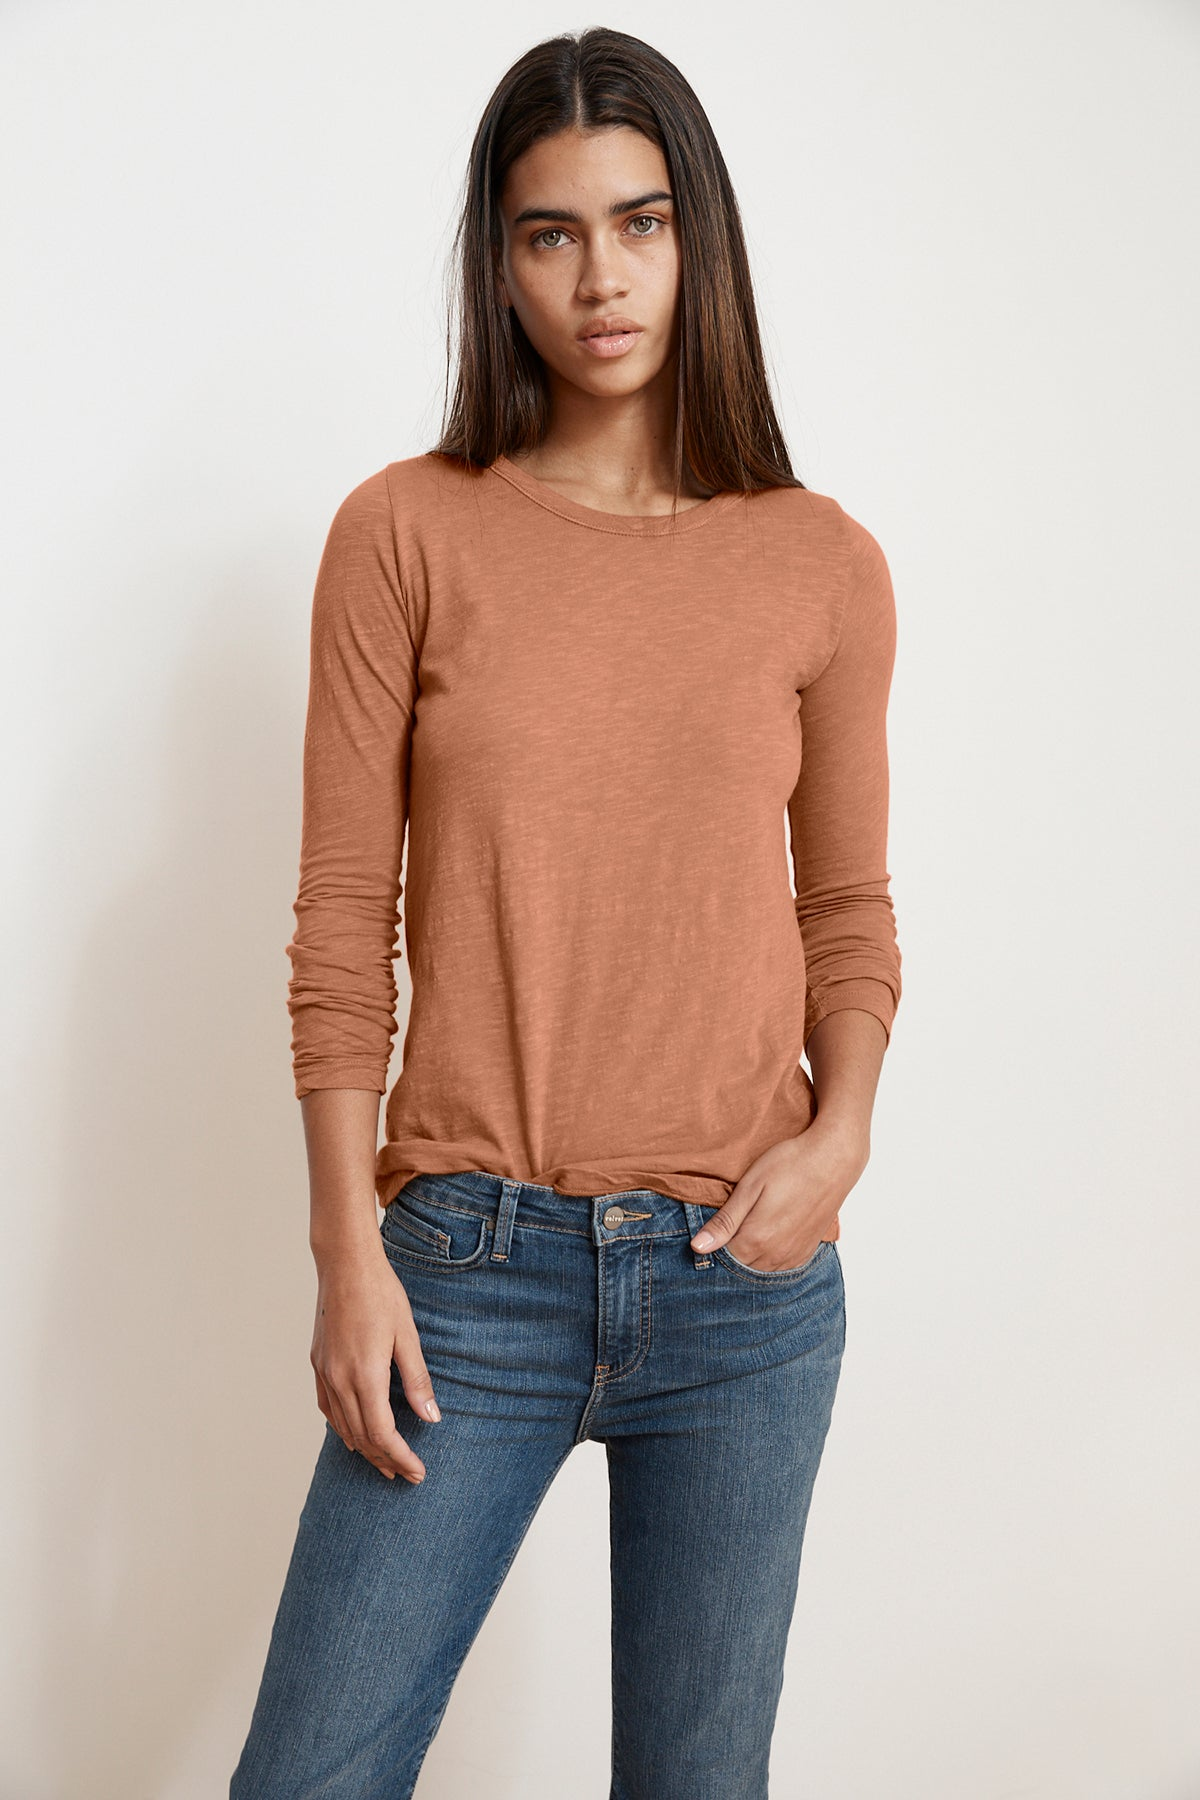 LIZZIE ORIGINAL SLUB LONG SLEEVE TEE